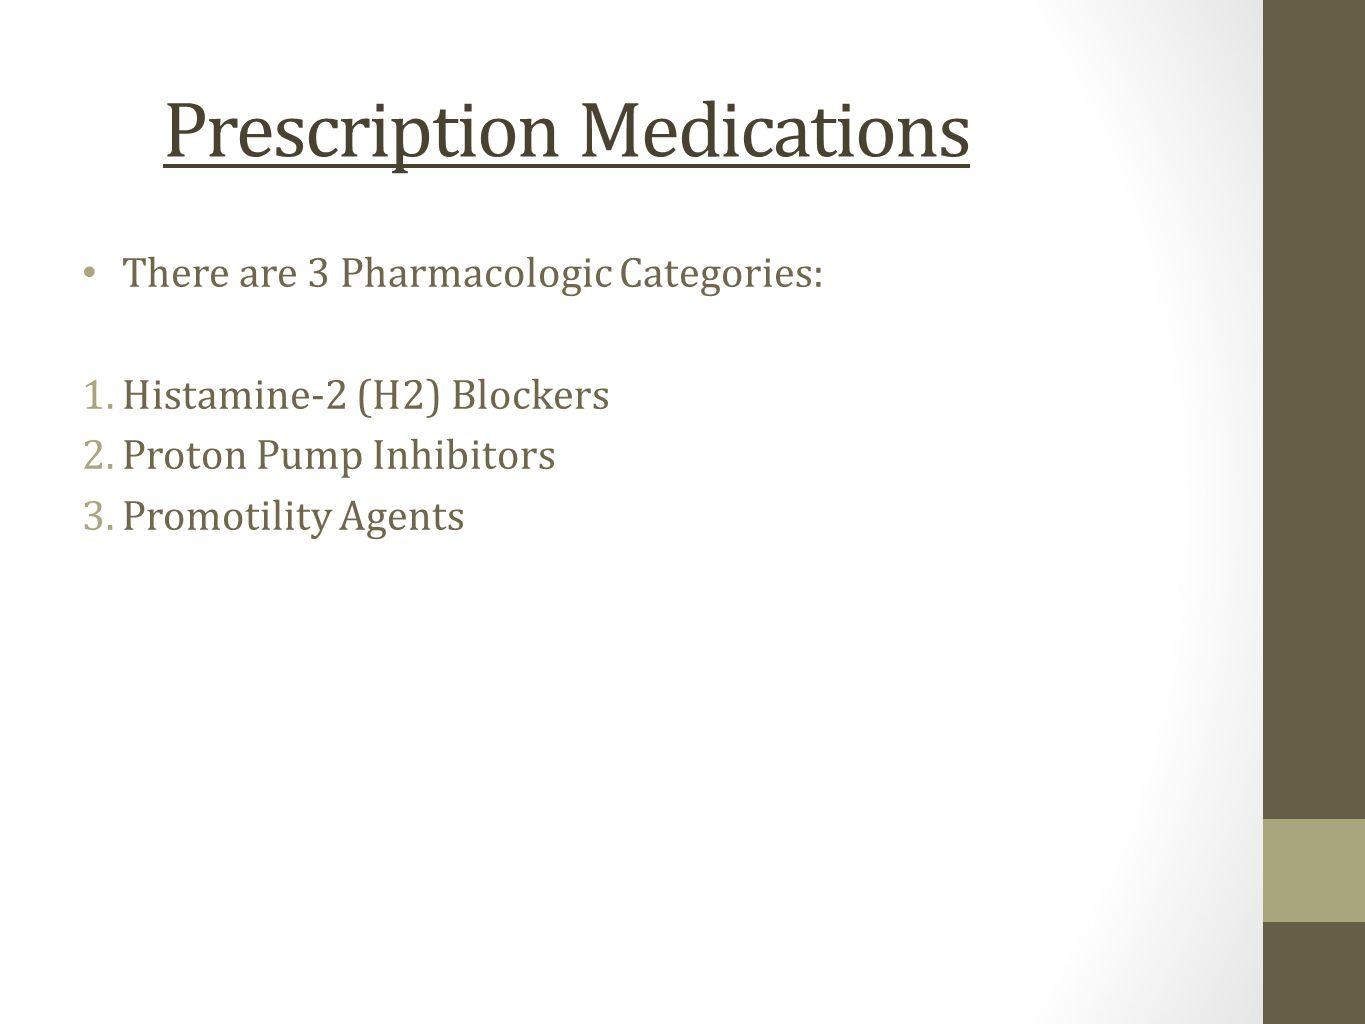 Prescription Medications There are 3 Pharmacologic Categories: 1.Histamine-2 (H2) Blockers 2.Proton Pump Inhibitors 3.Promotility Agents